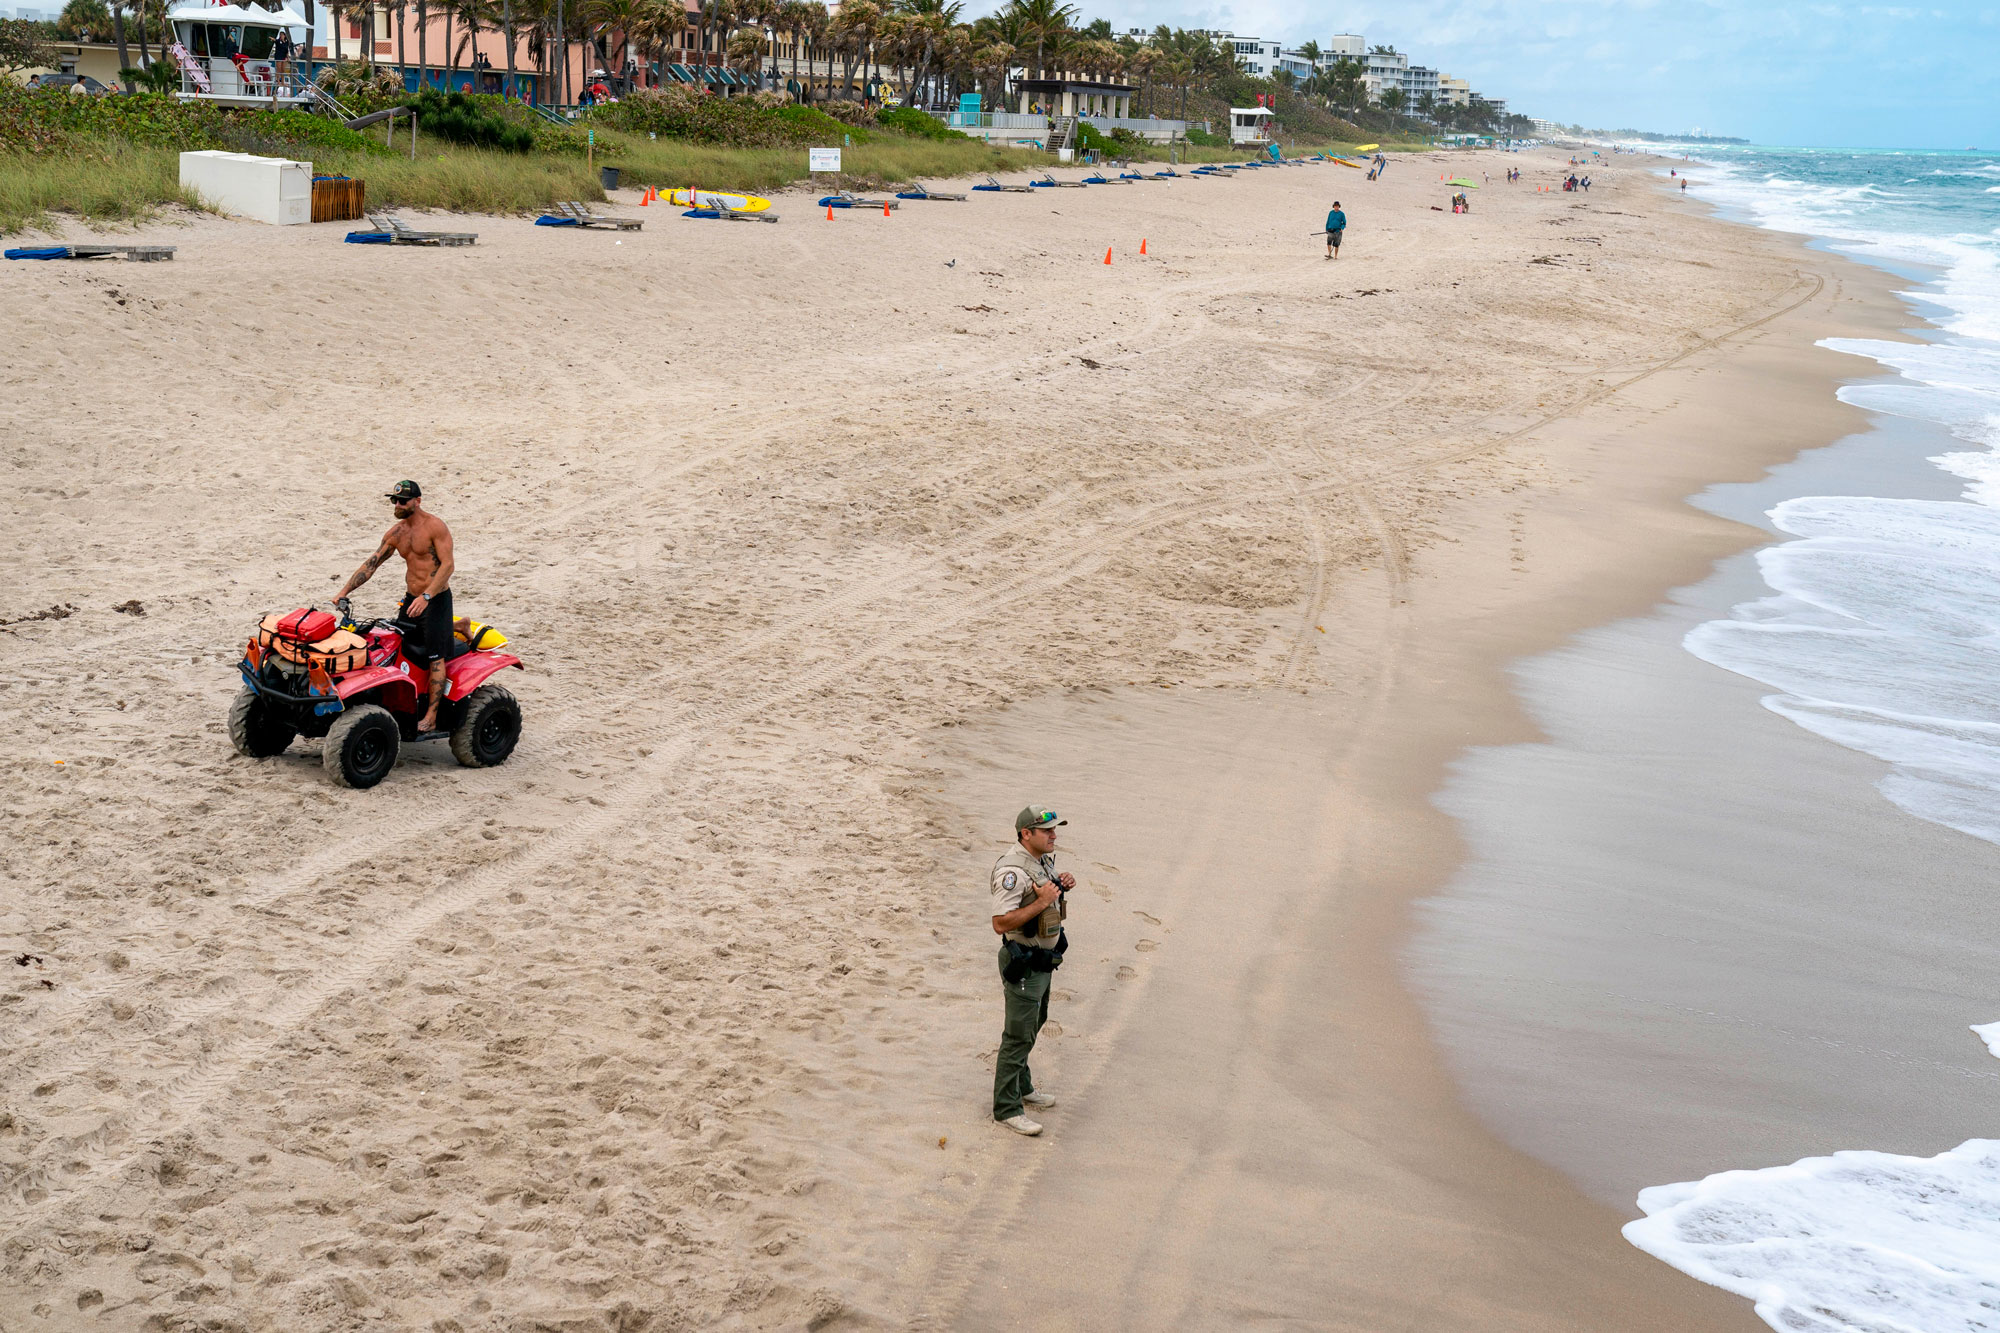 Lake Worth Beach lifeguard captain Michael Tricarico, left and FWC officer Ryan Ames clear the beach on March 20 in Lake Worth, Florida.